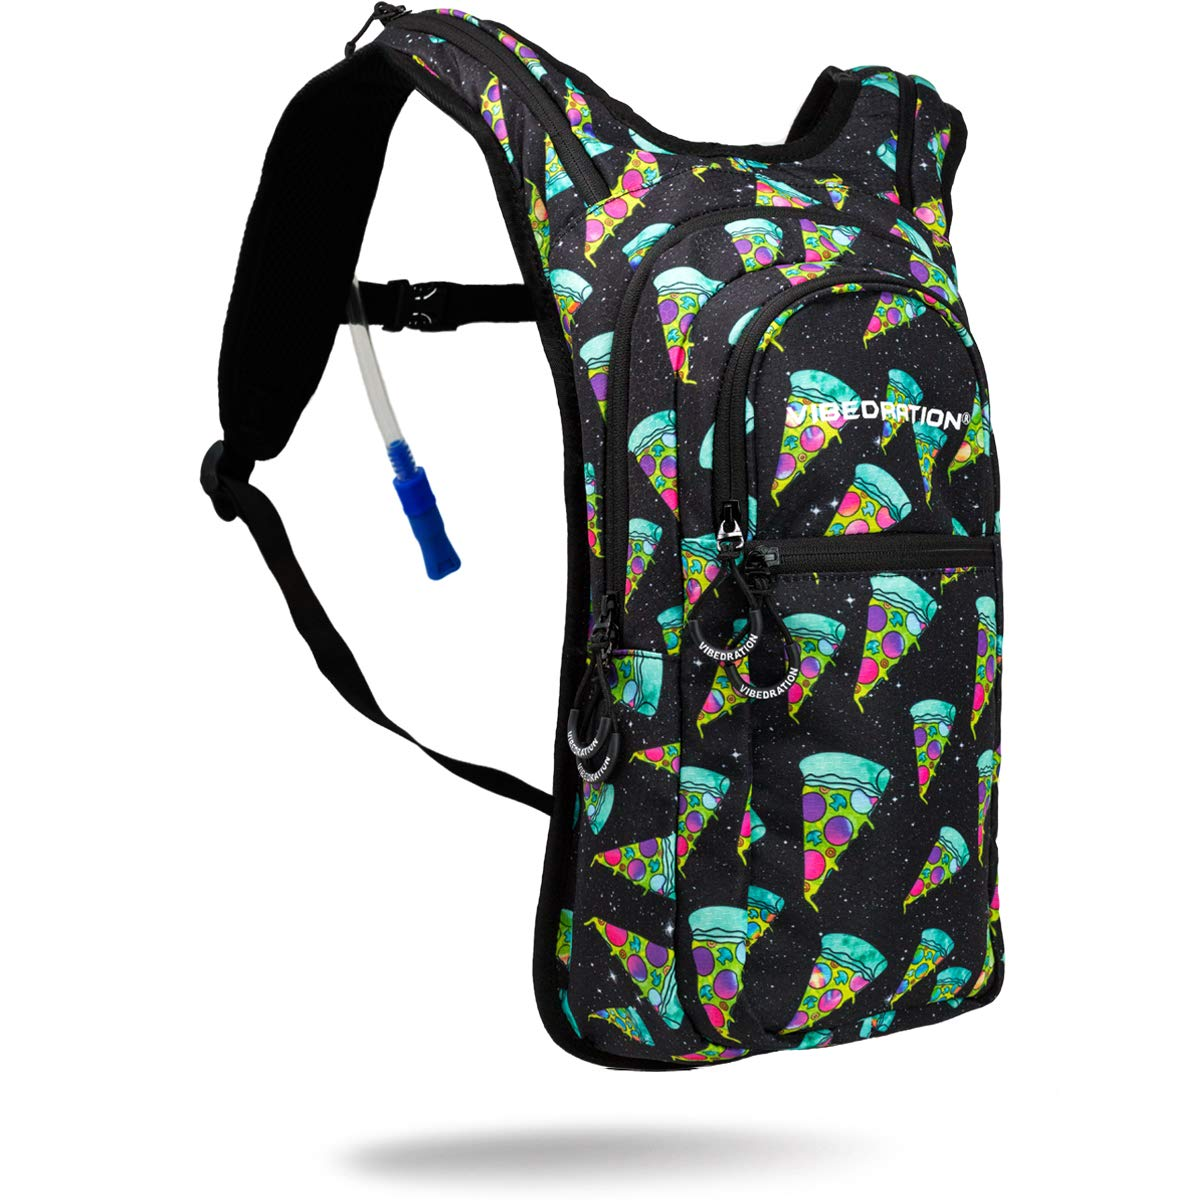 Vibedration VIP 2 Liter Hydration Pack | Festival Rave Hydration, Hiking Camping Backpack (Cosmic Pizza)